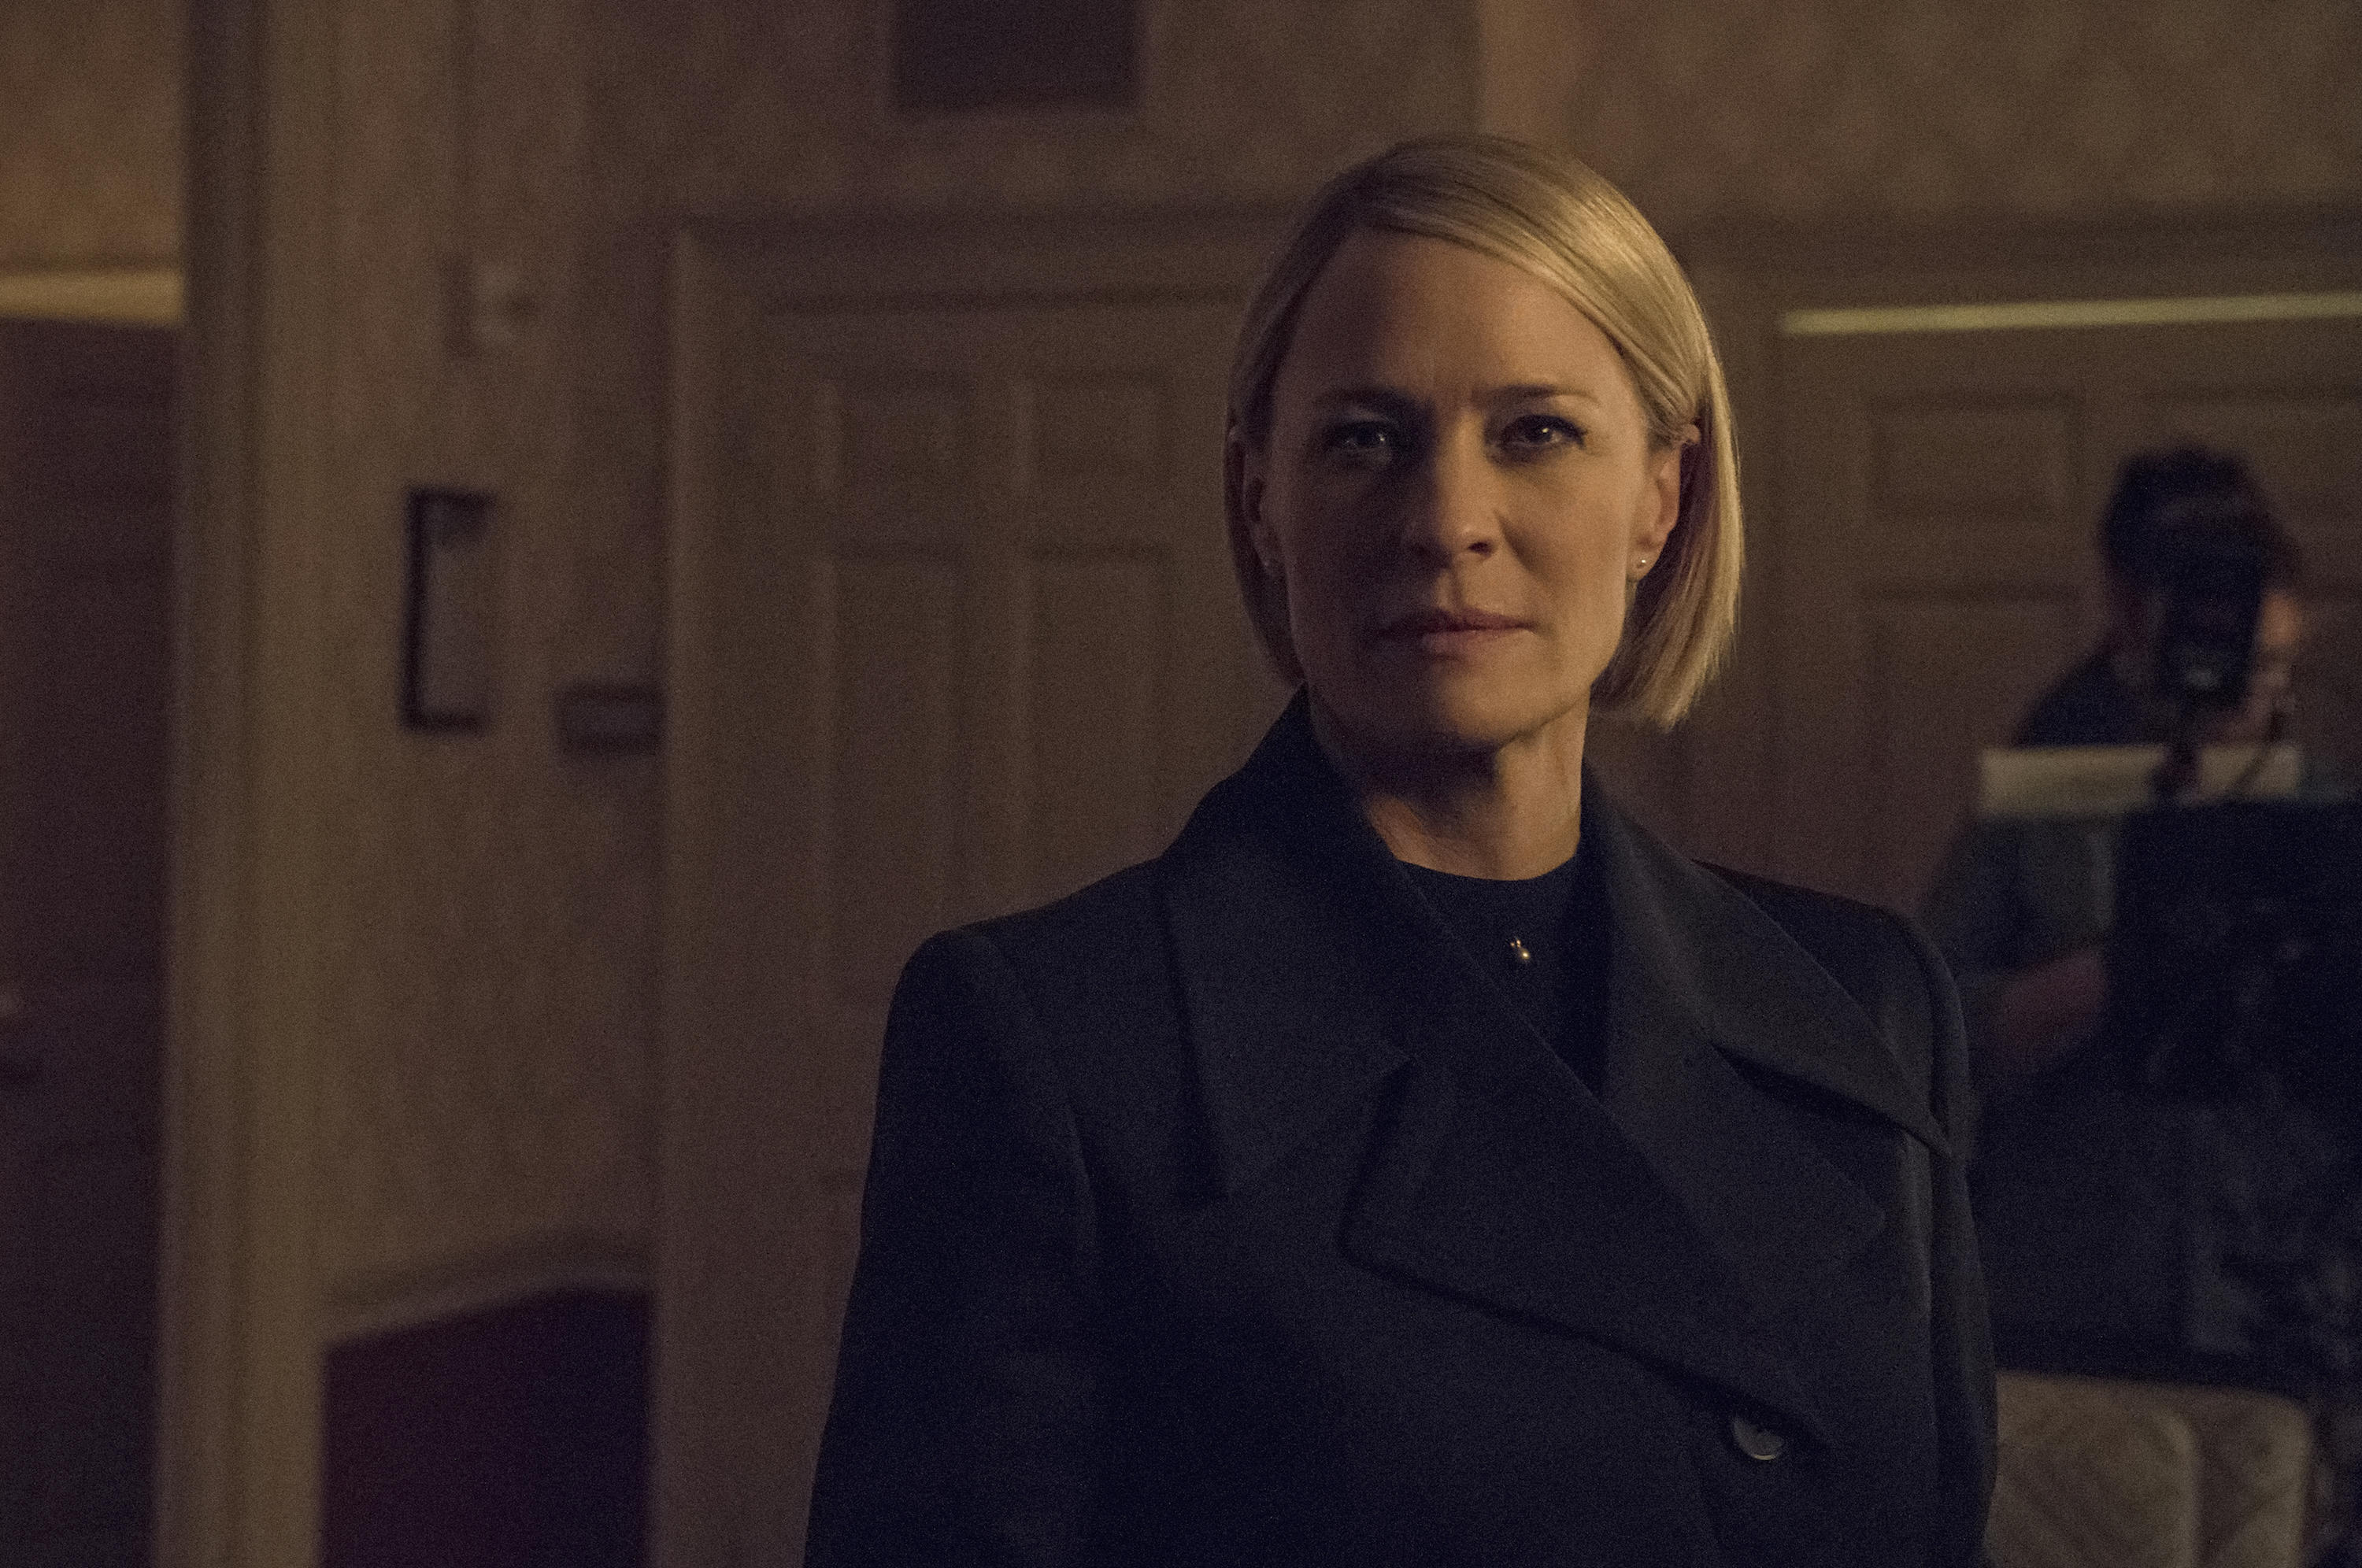 Robin Wright as Claire Underwood looks steely-eyed into the camera.